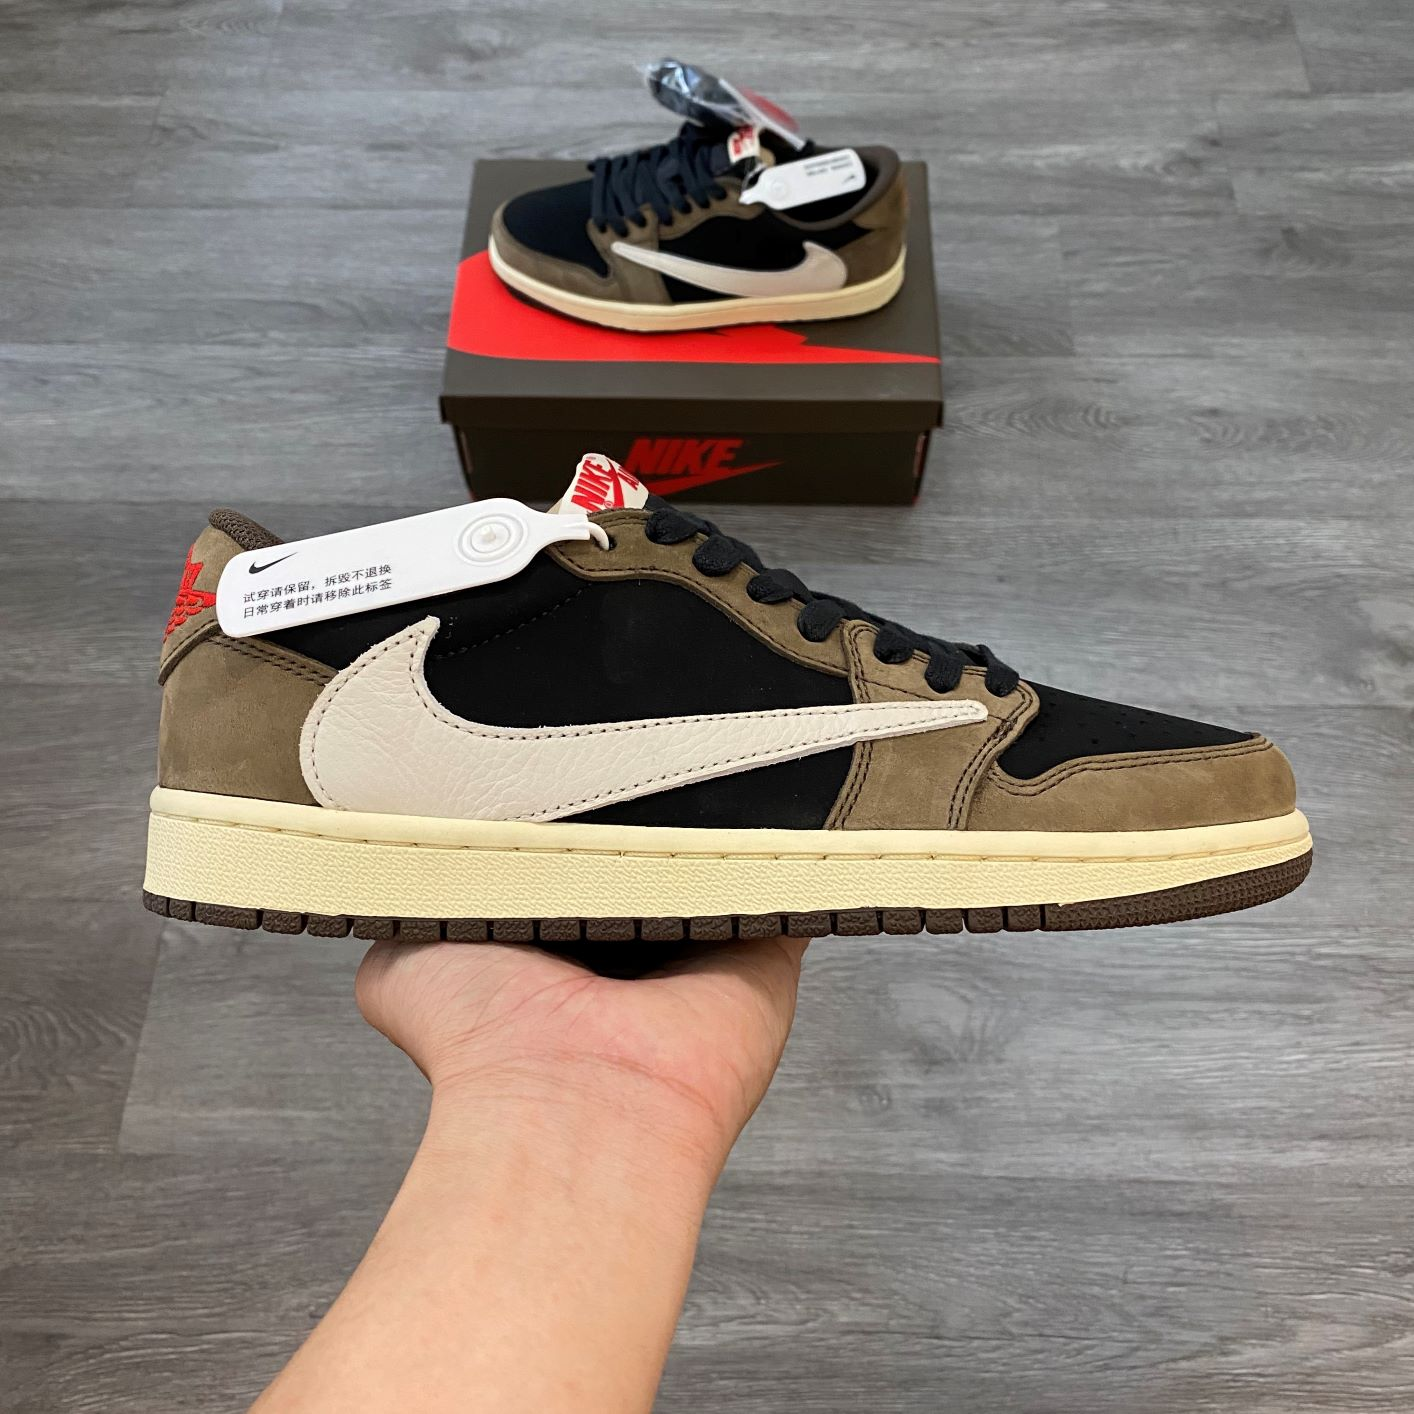 Nike Jordan1 Low Travis Scott